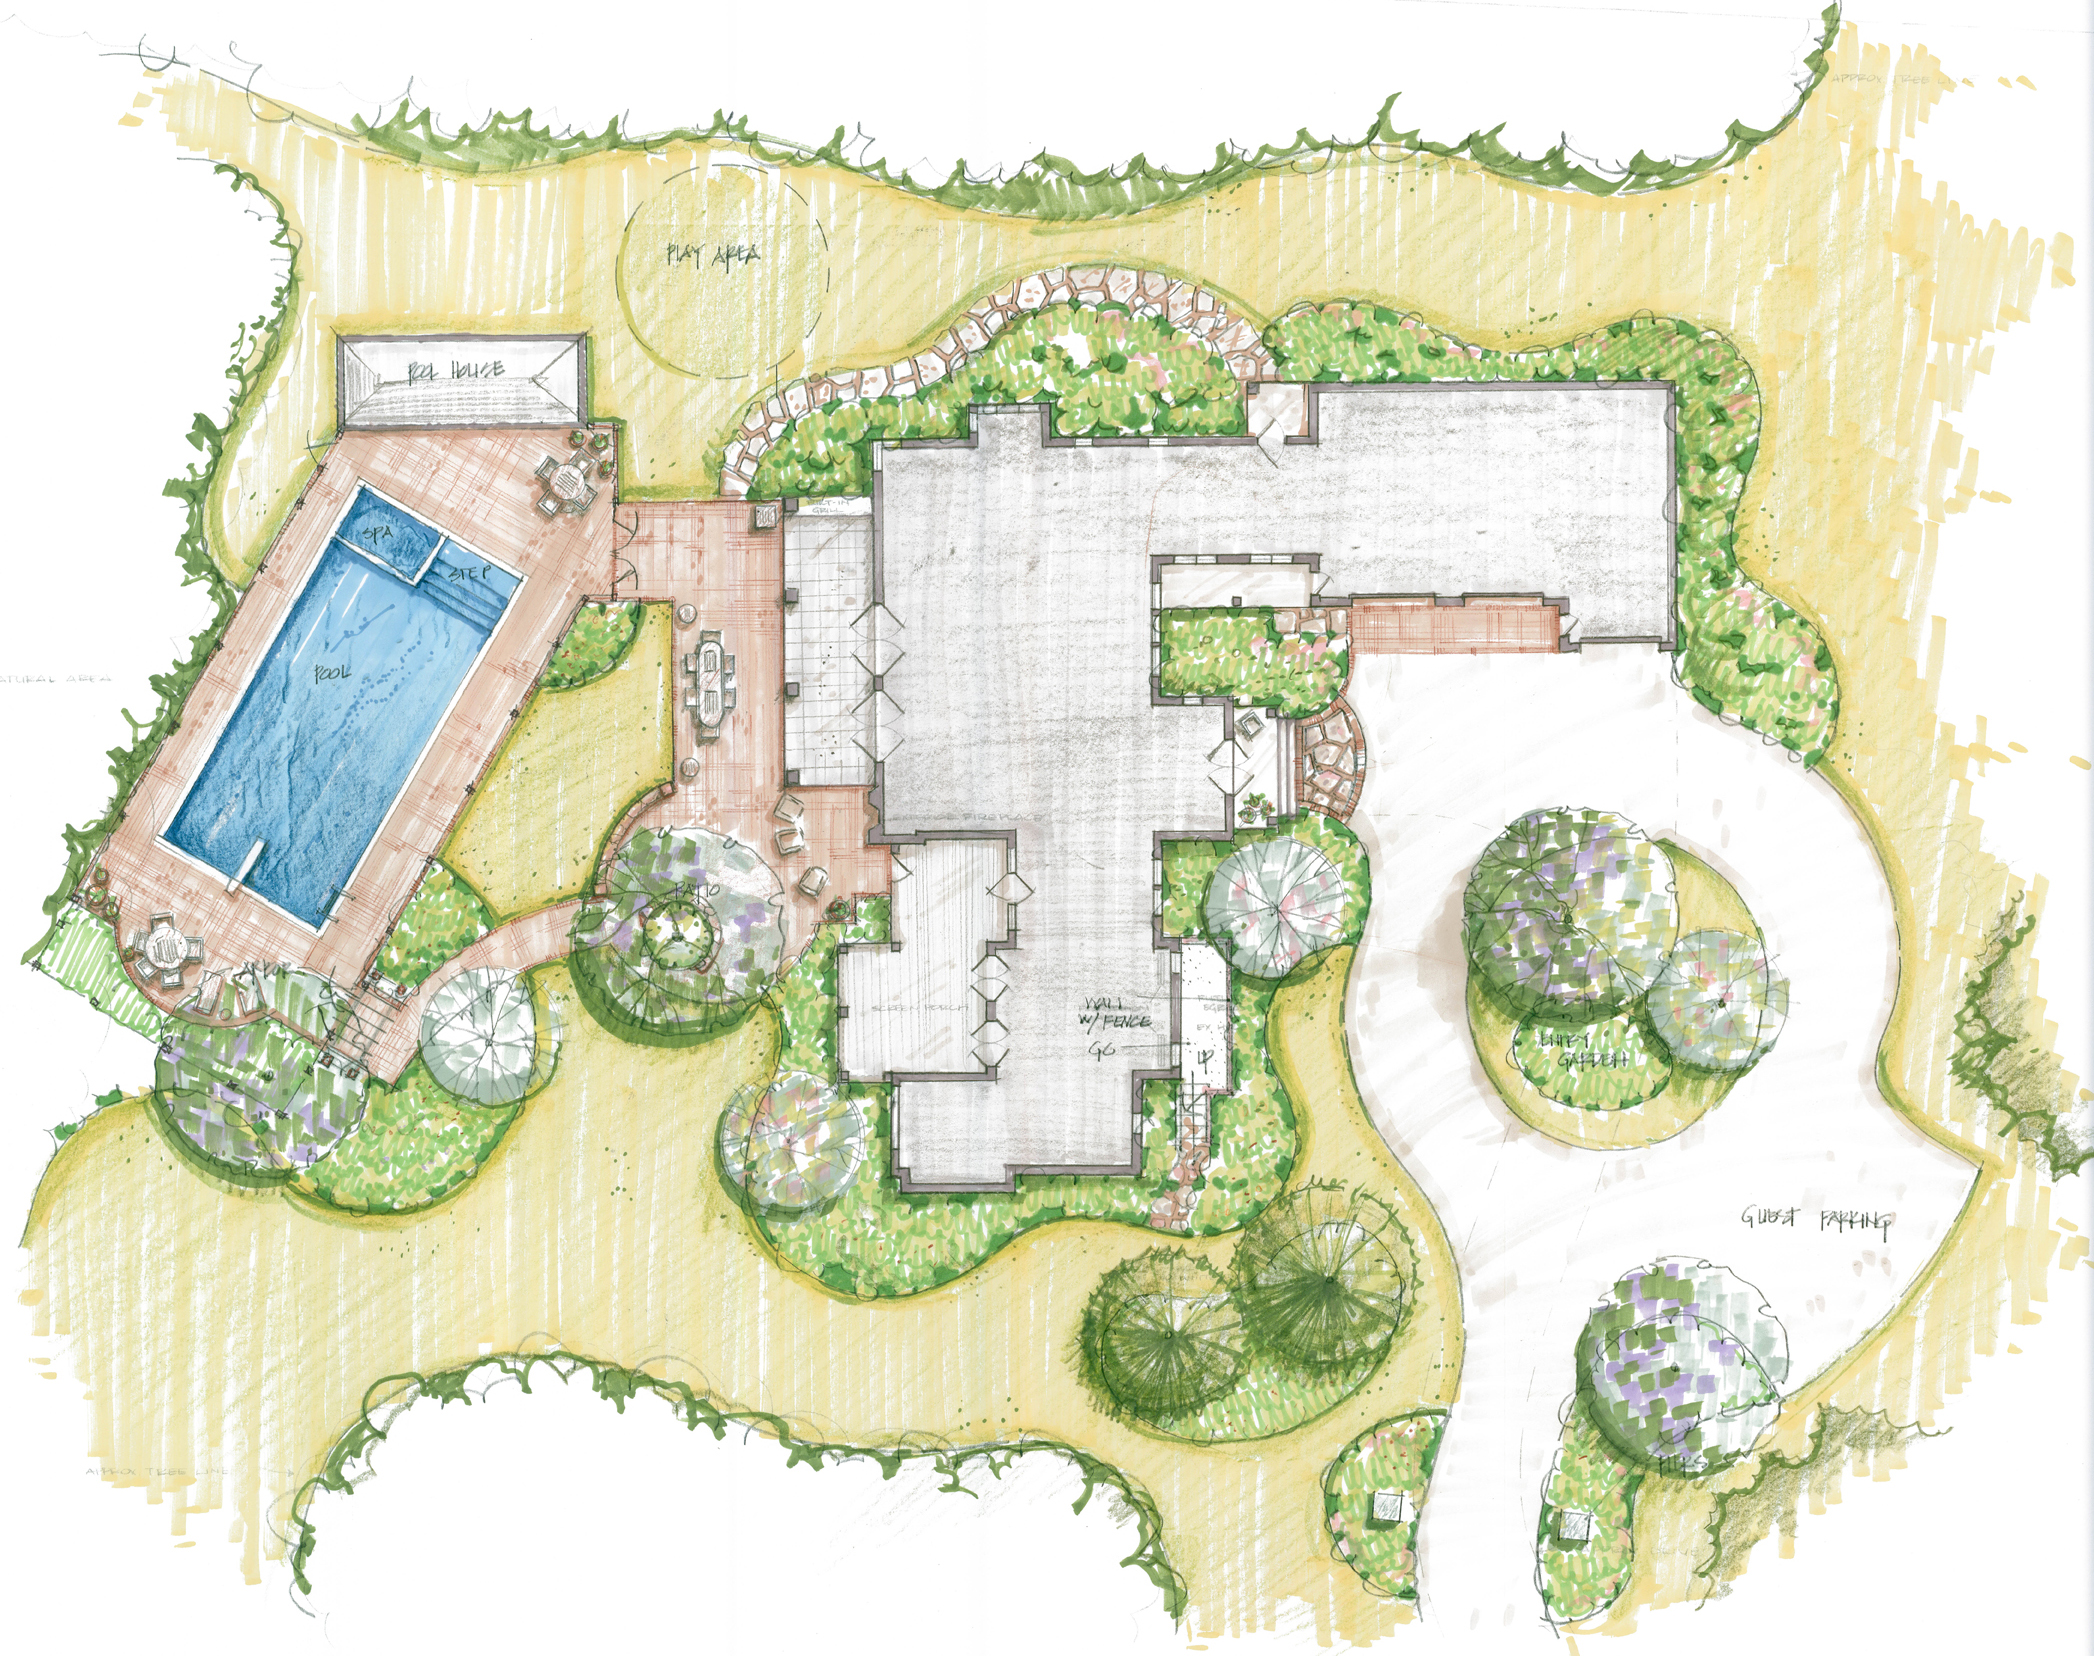 5 simple reasons to plan your landscape design landscape for Zen garden designs plan